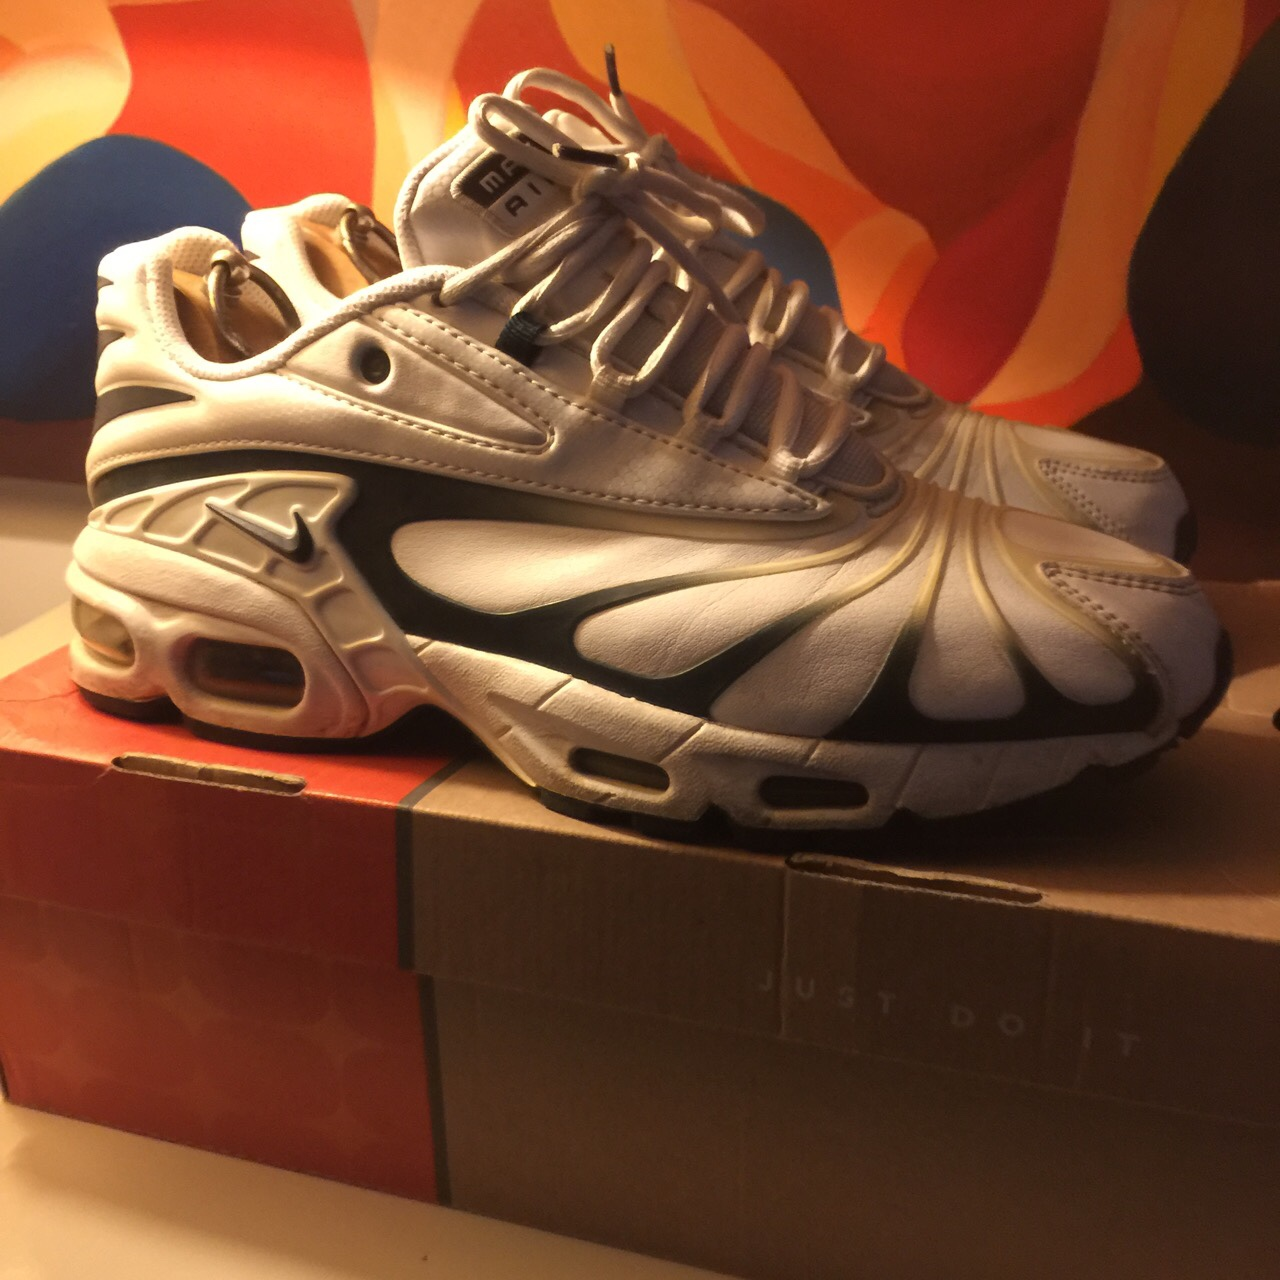 reputable site cf219 6ad53 Wts Nike air max Tailwind 5 plus navy/white. Very... - Depop